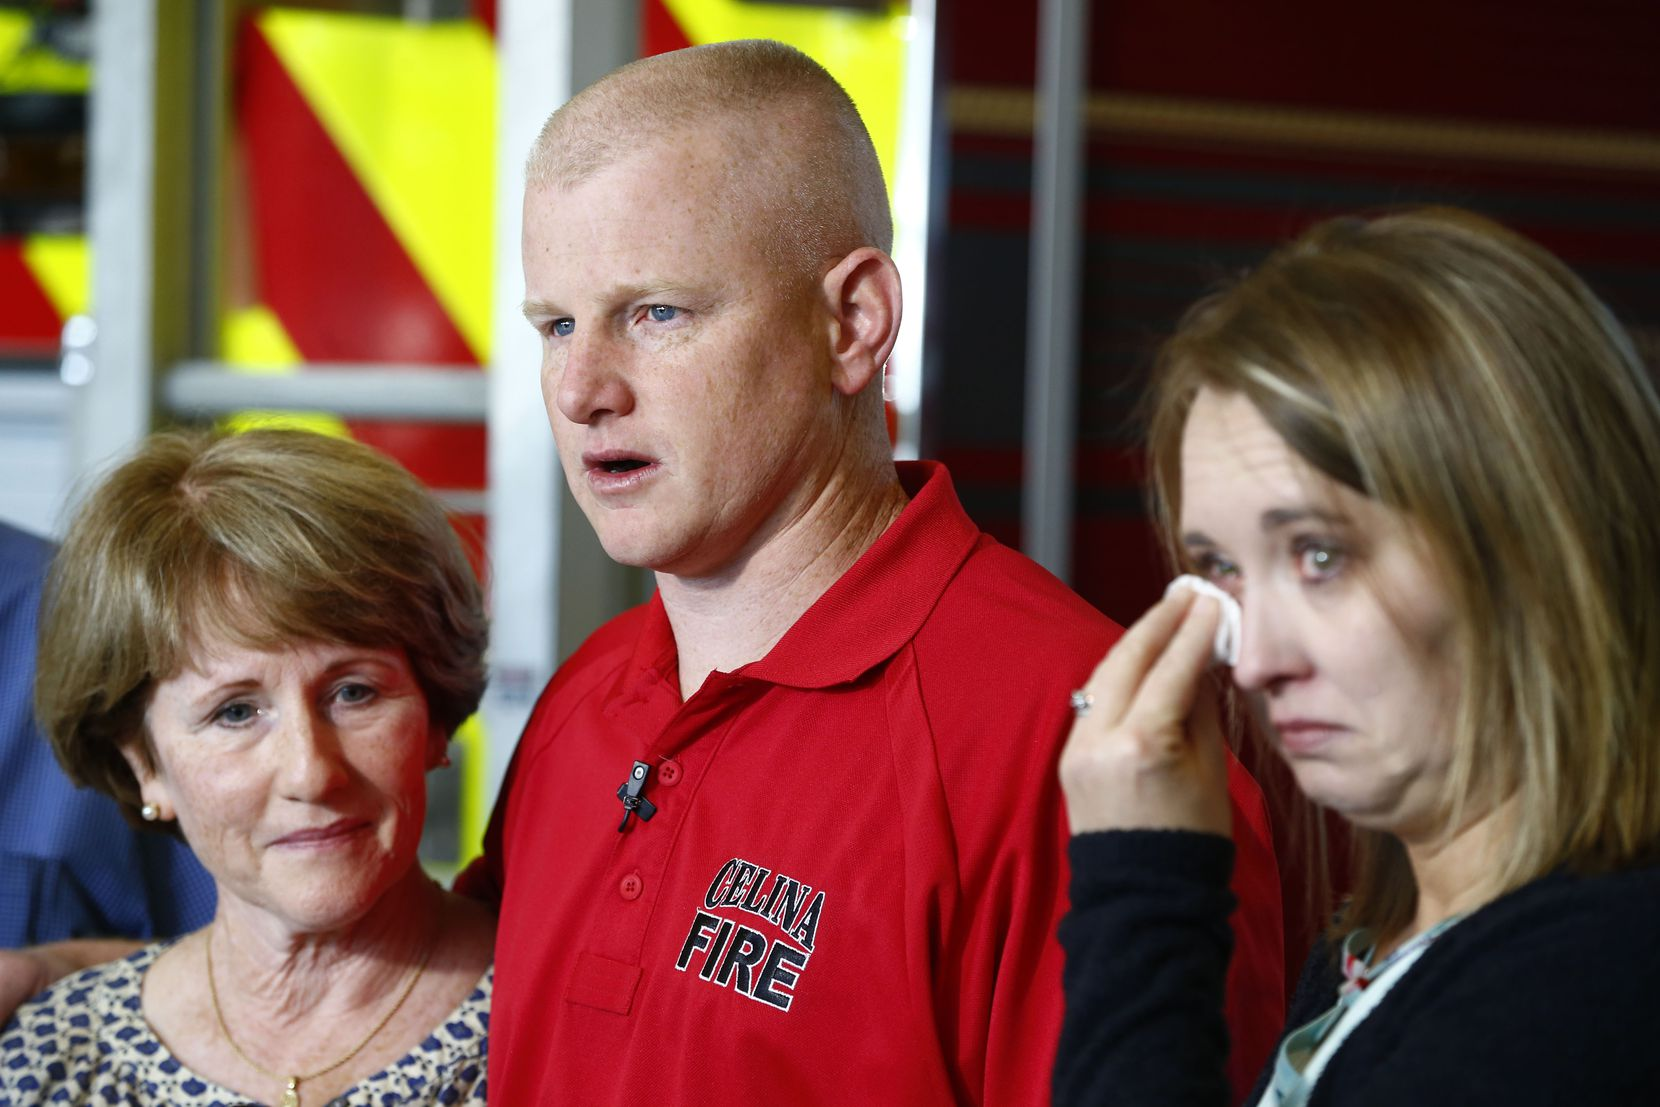 Julie Needum mother, (from left) Andrew Needum and his wife Stephanie Needum talk about their experience on Southwest Airlines flight 1380 to the media at Celina City Fire Department.